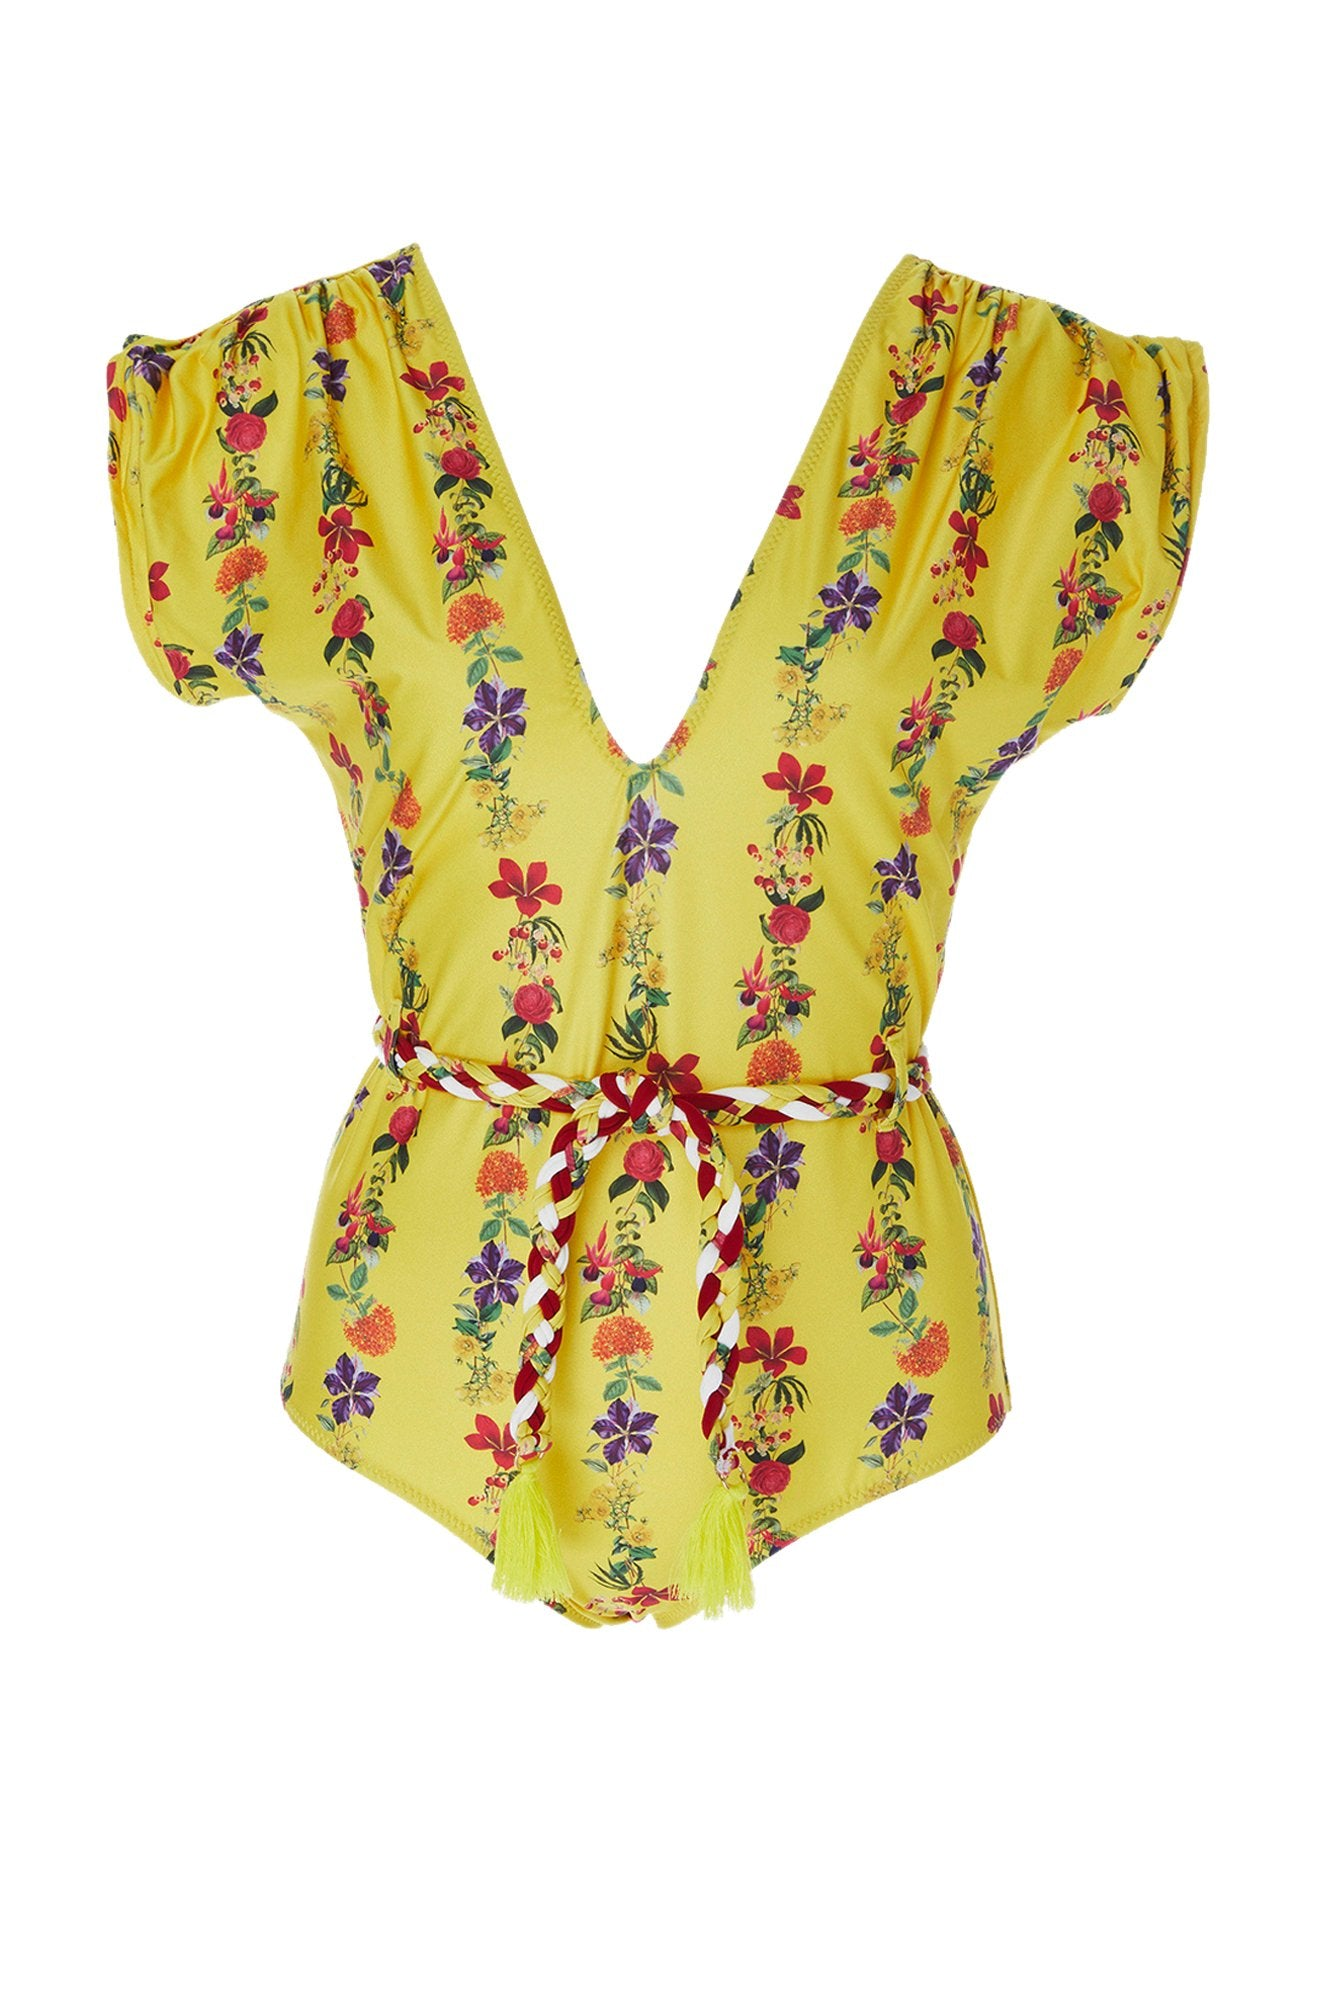 Carolina K Liset One Piece Swimsuit Flower Stripe Yellow